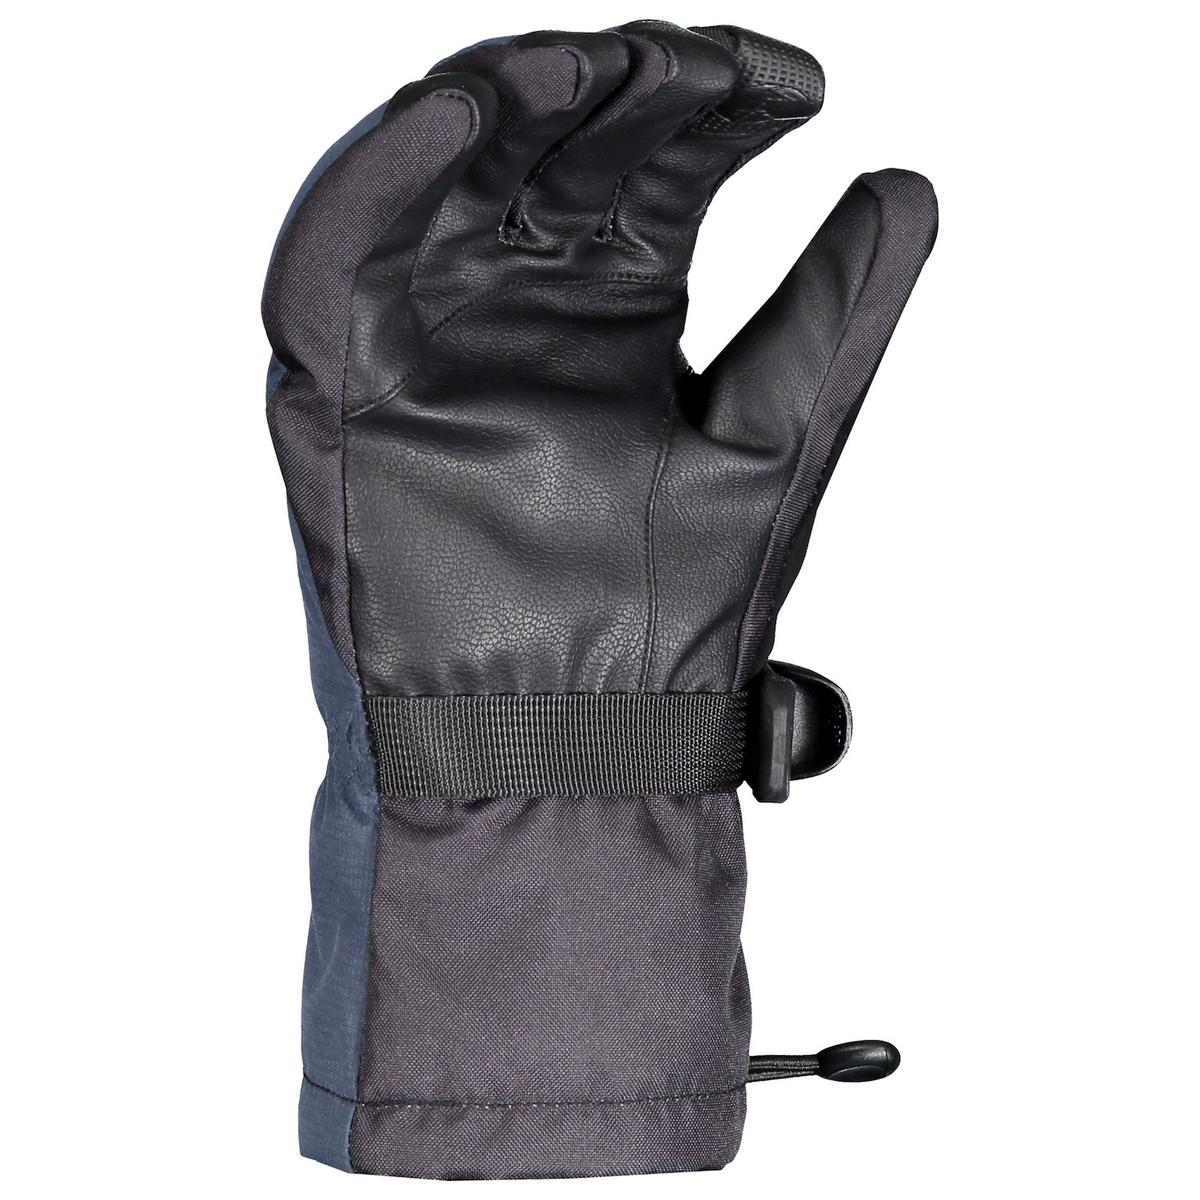 Scott SCO Ultimate Pro Women's Glove